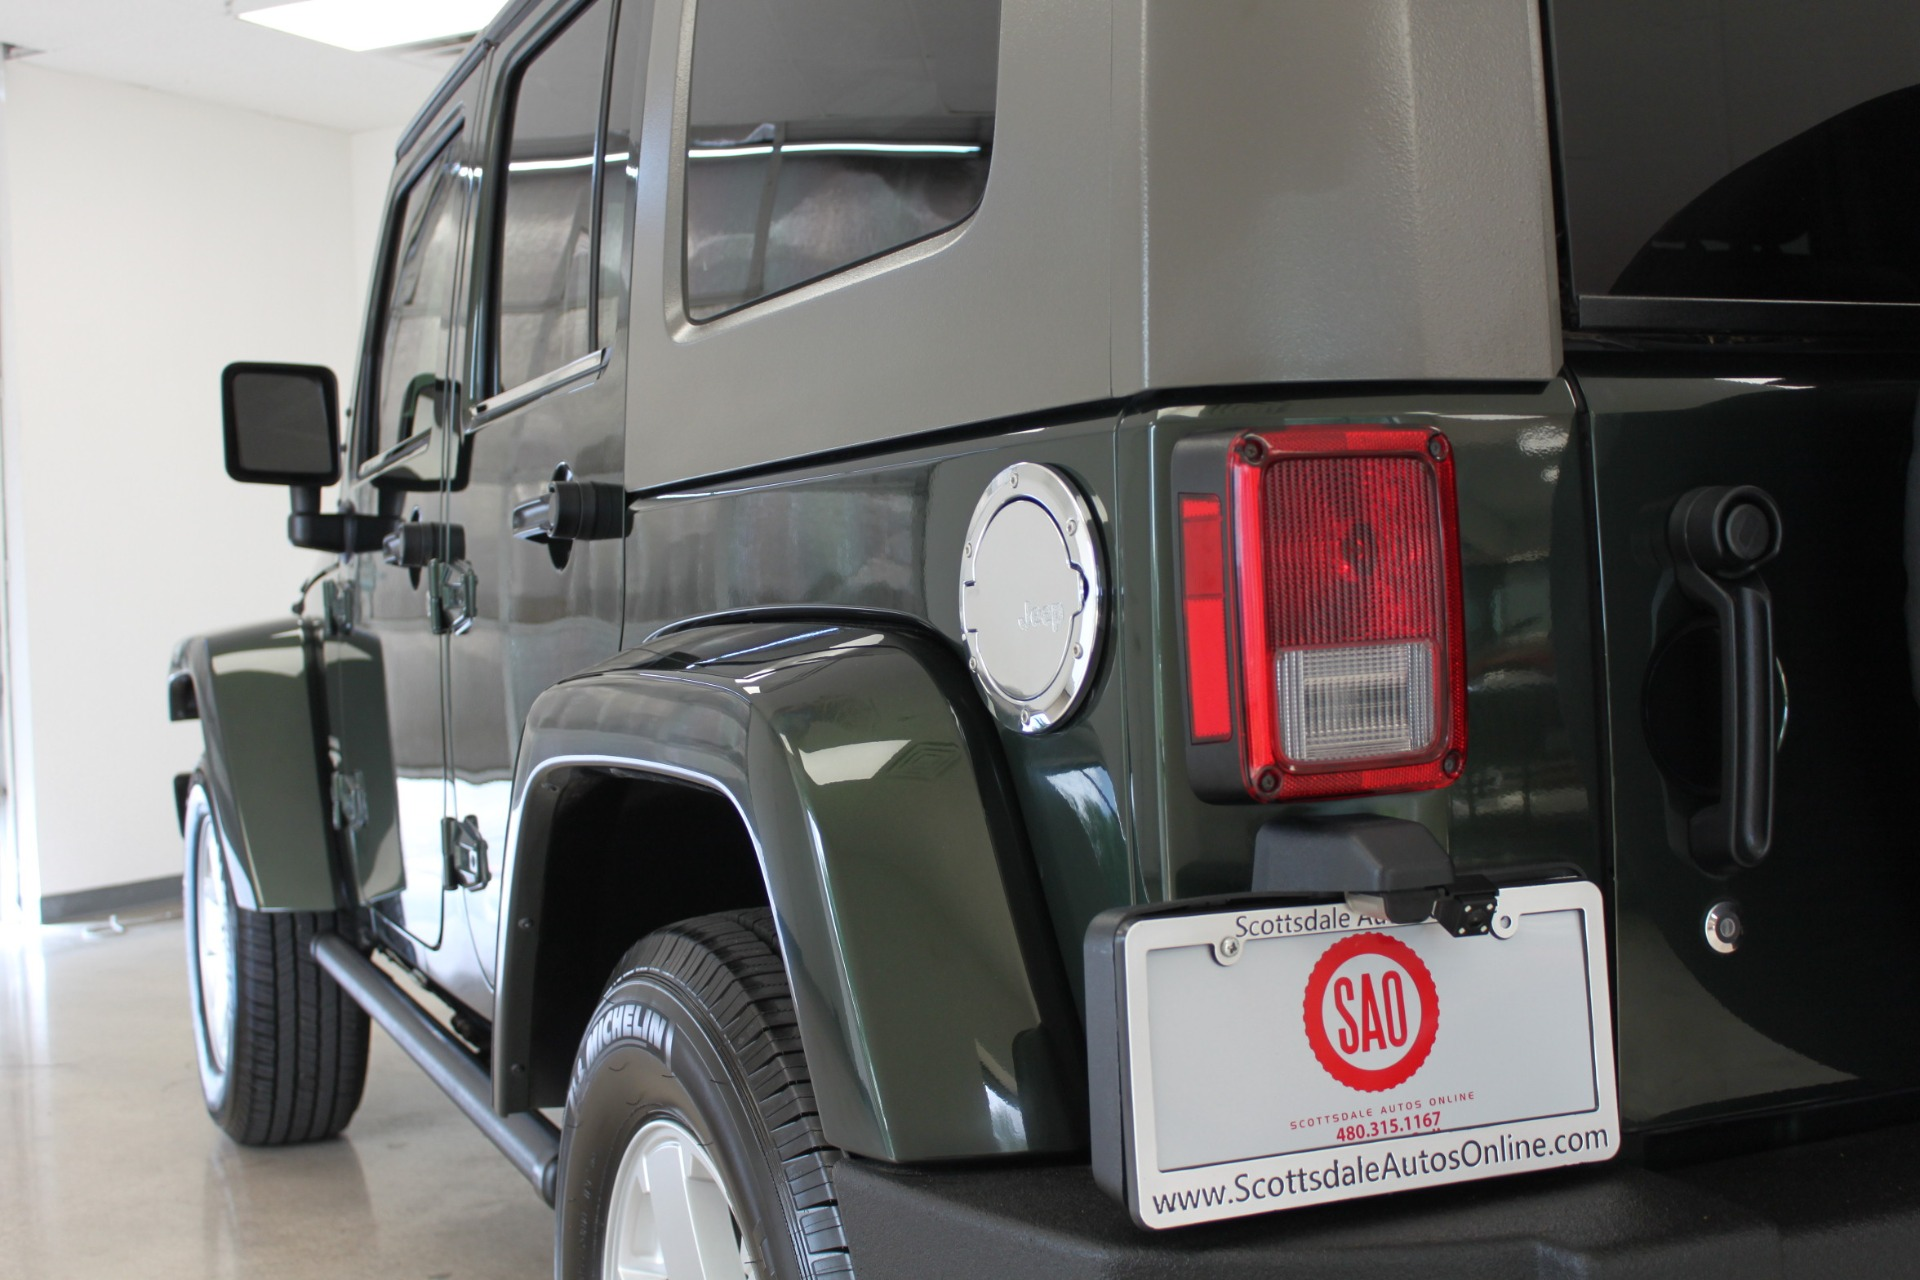 Used-2010-Jeep-Wrangler-Unlimited-Sahara-4X4-LS430